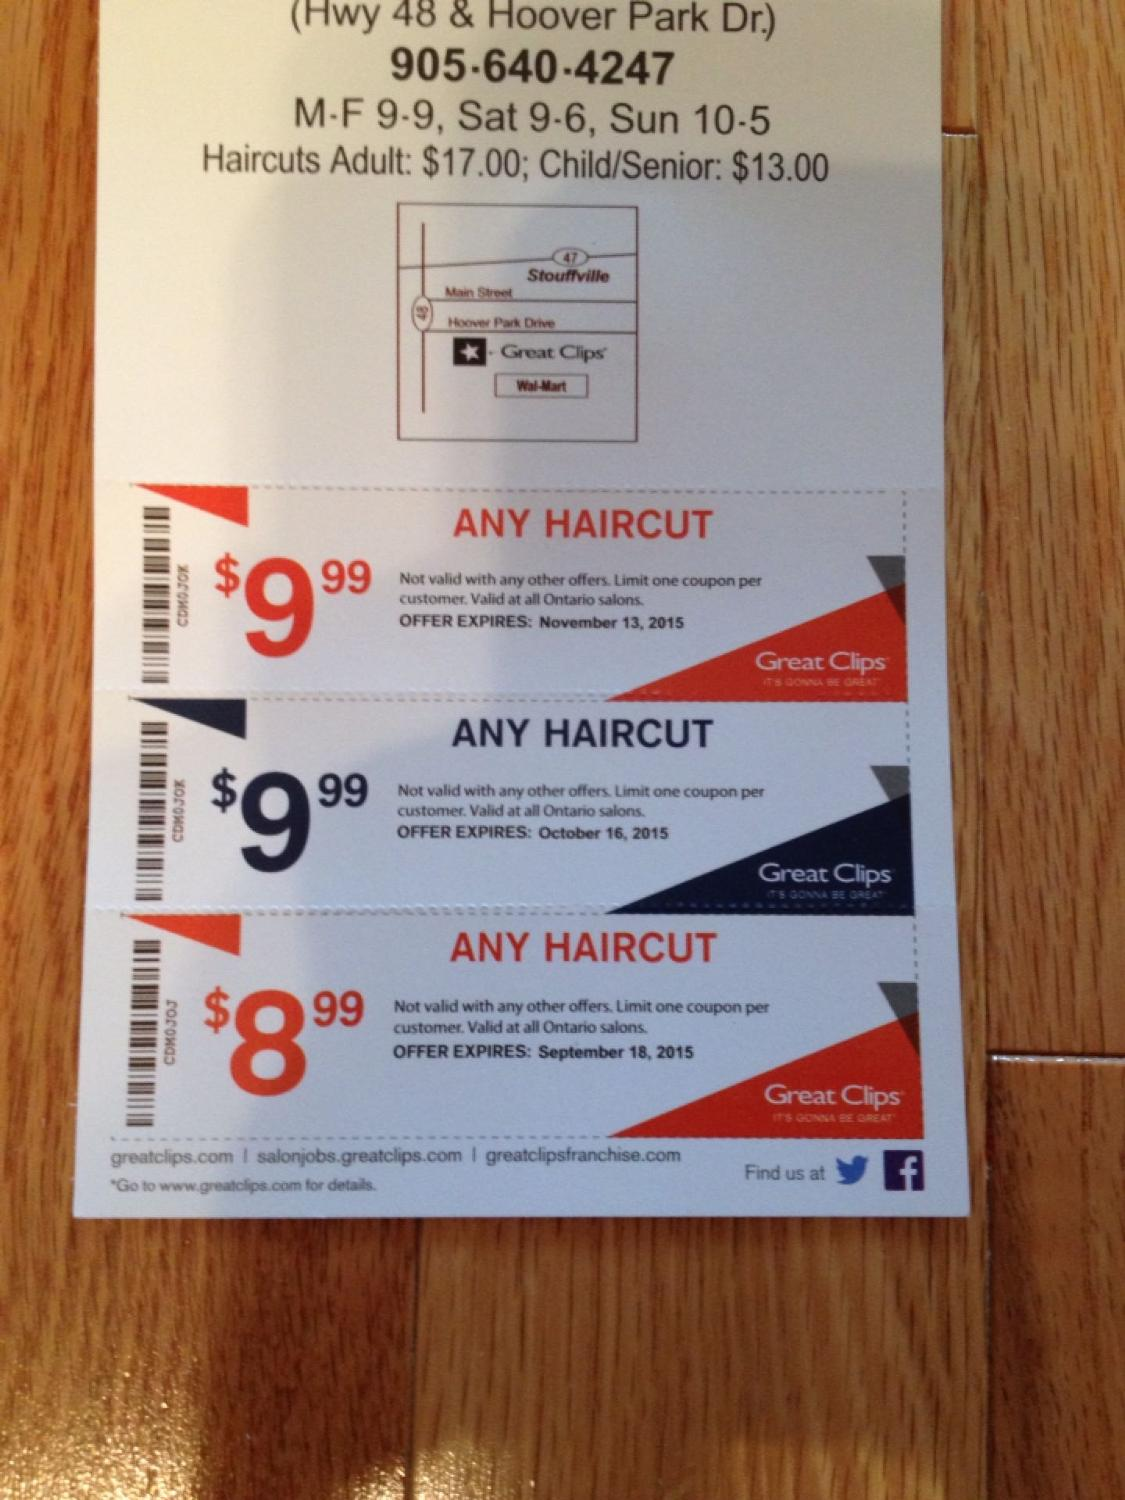 7 99 haircut great clips greatclips 5 99 haircut haircuts models ideas 4386 | bba670e5ced3be9f25f6a320cbdc5dff